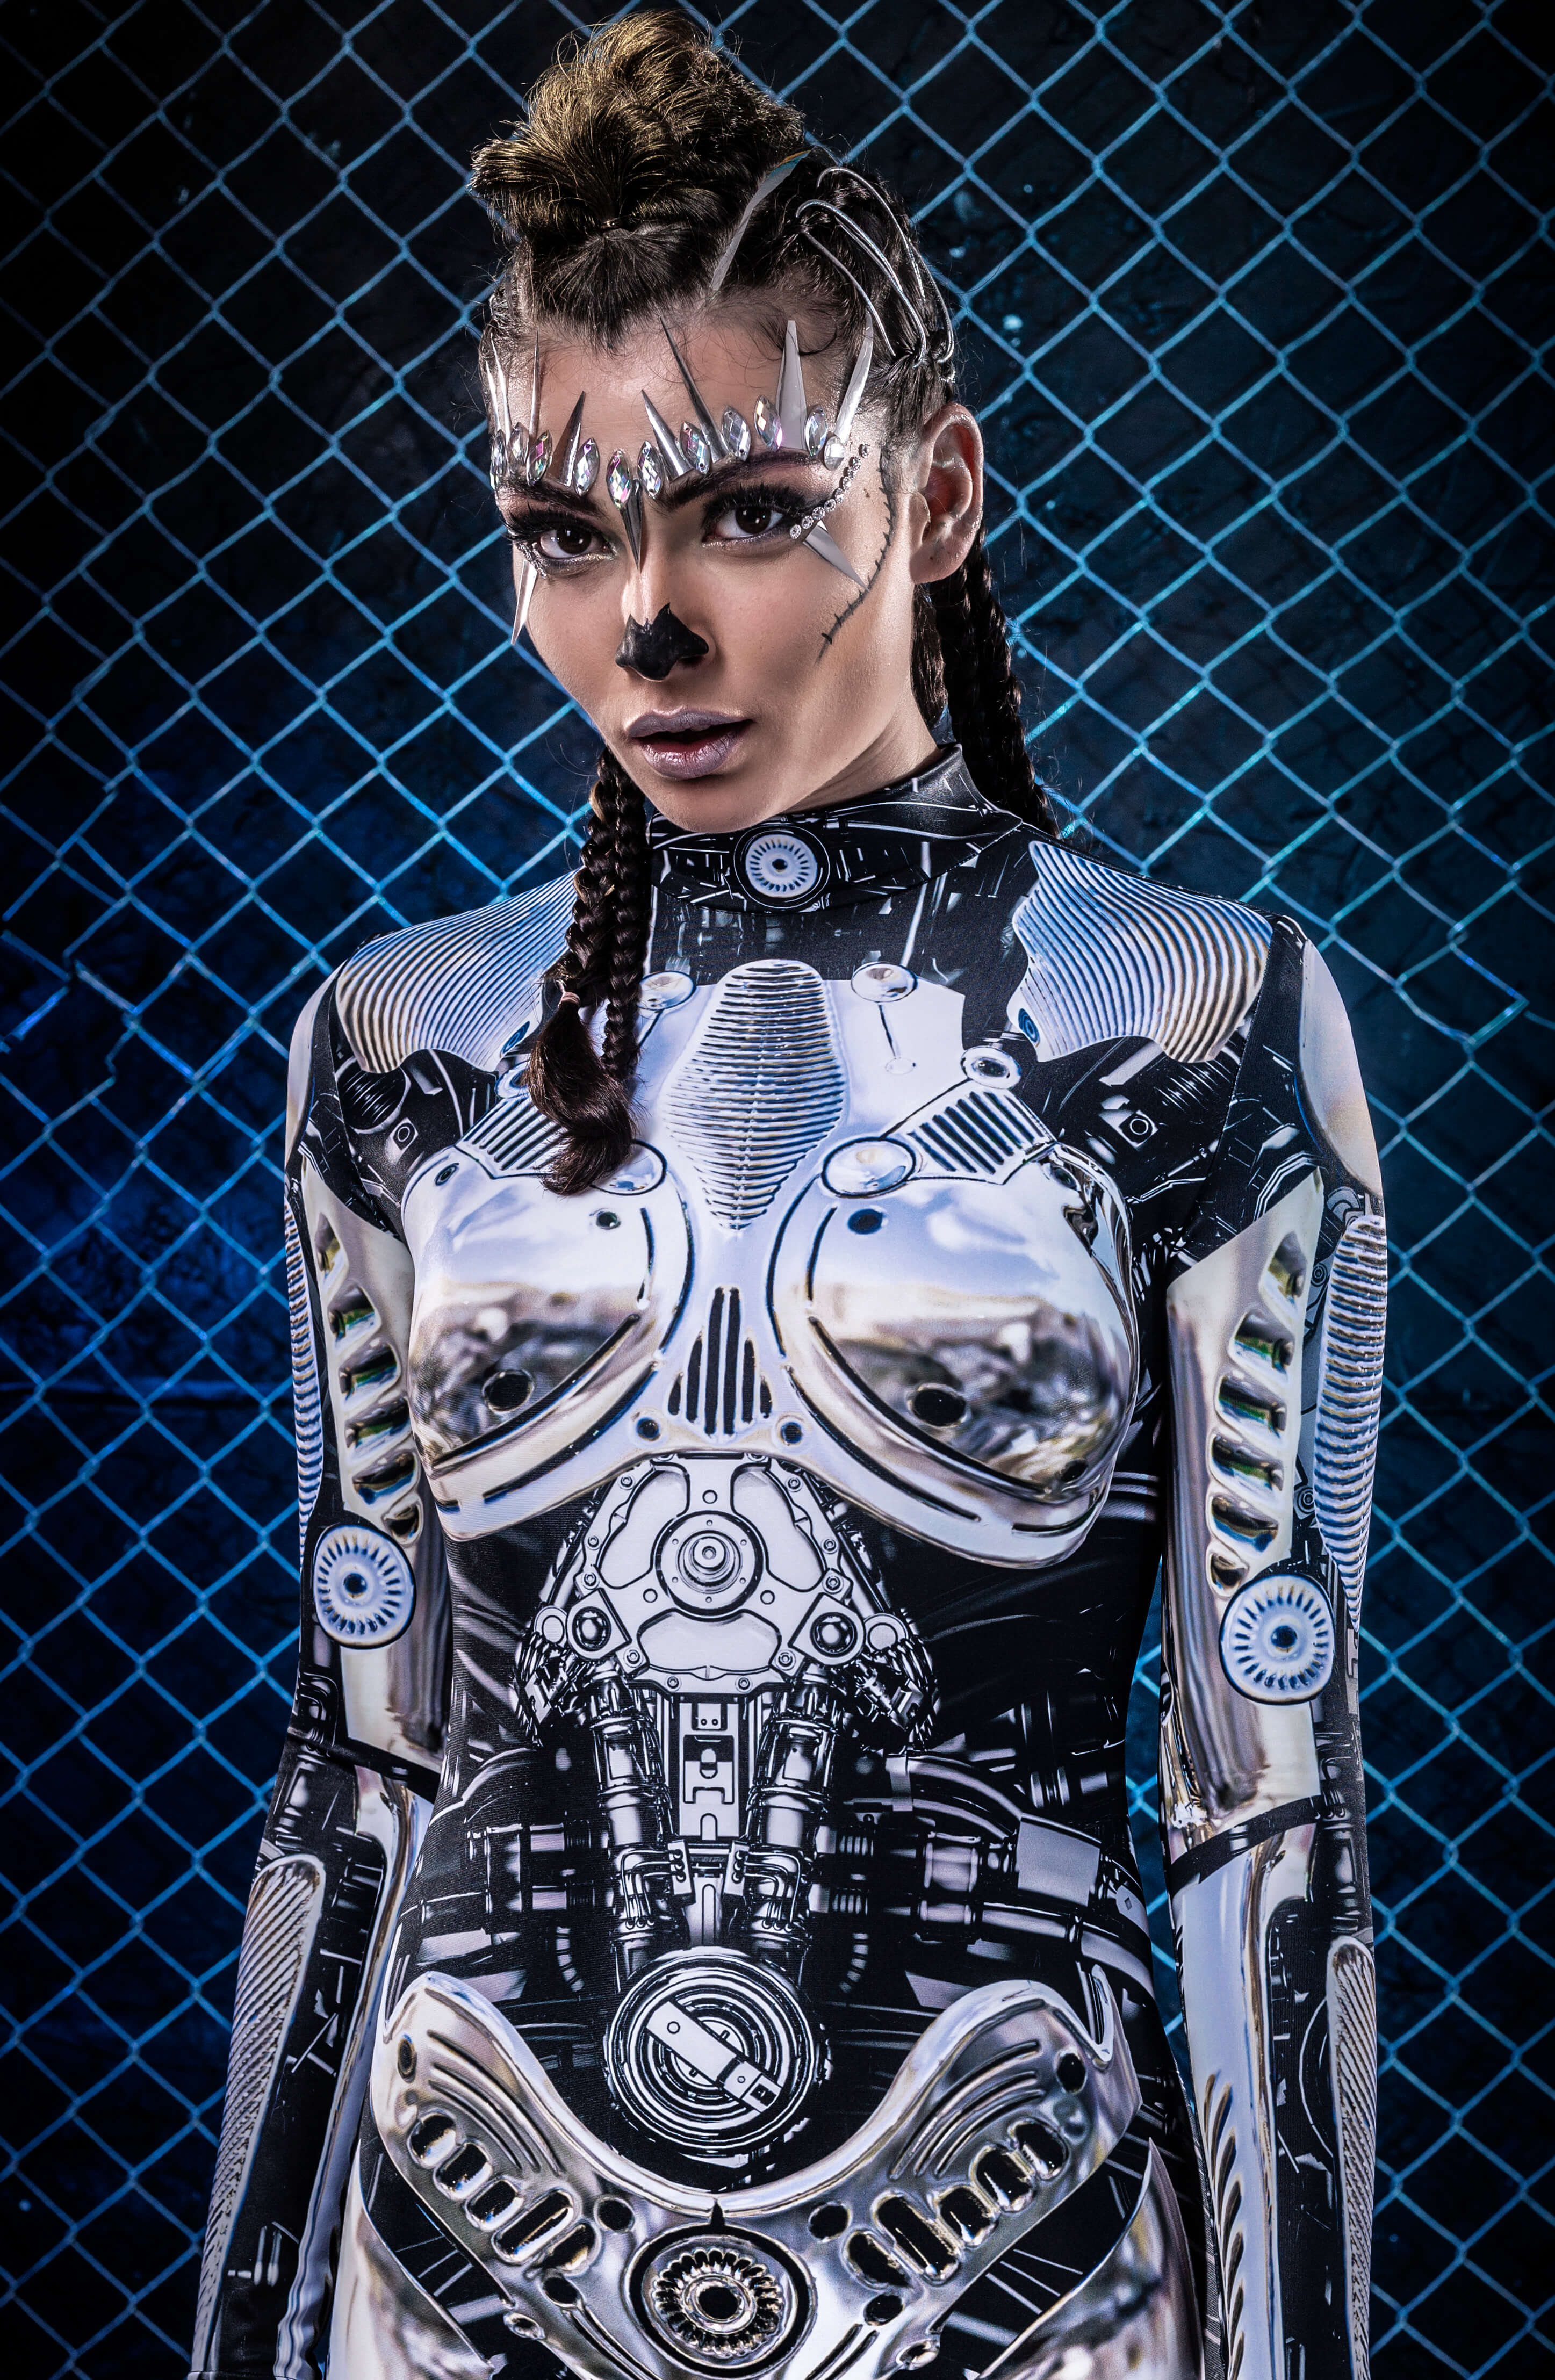 Rave Festival Clothing Women - Cyberpunk Steampunk Cosplay Outfit